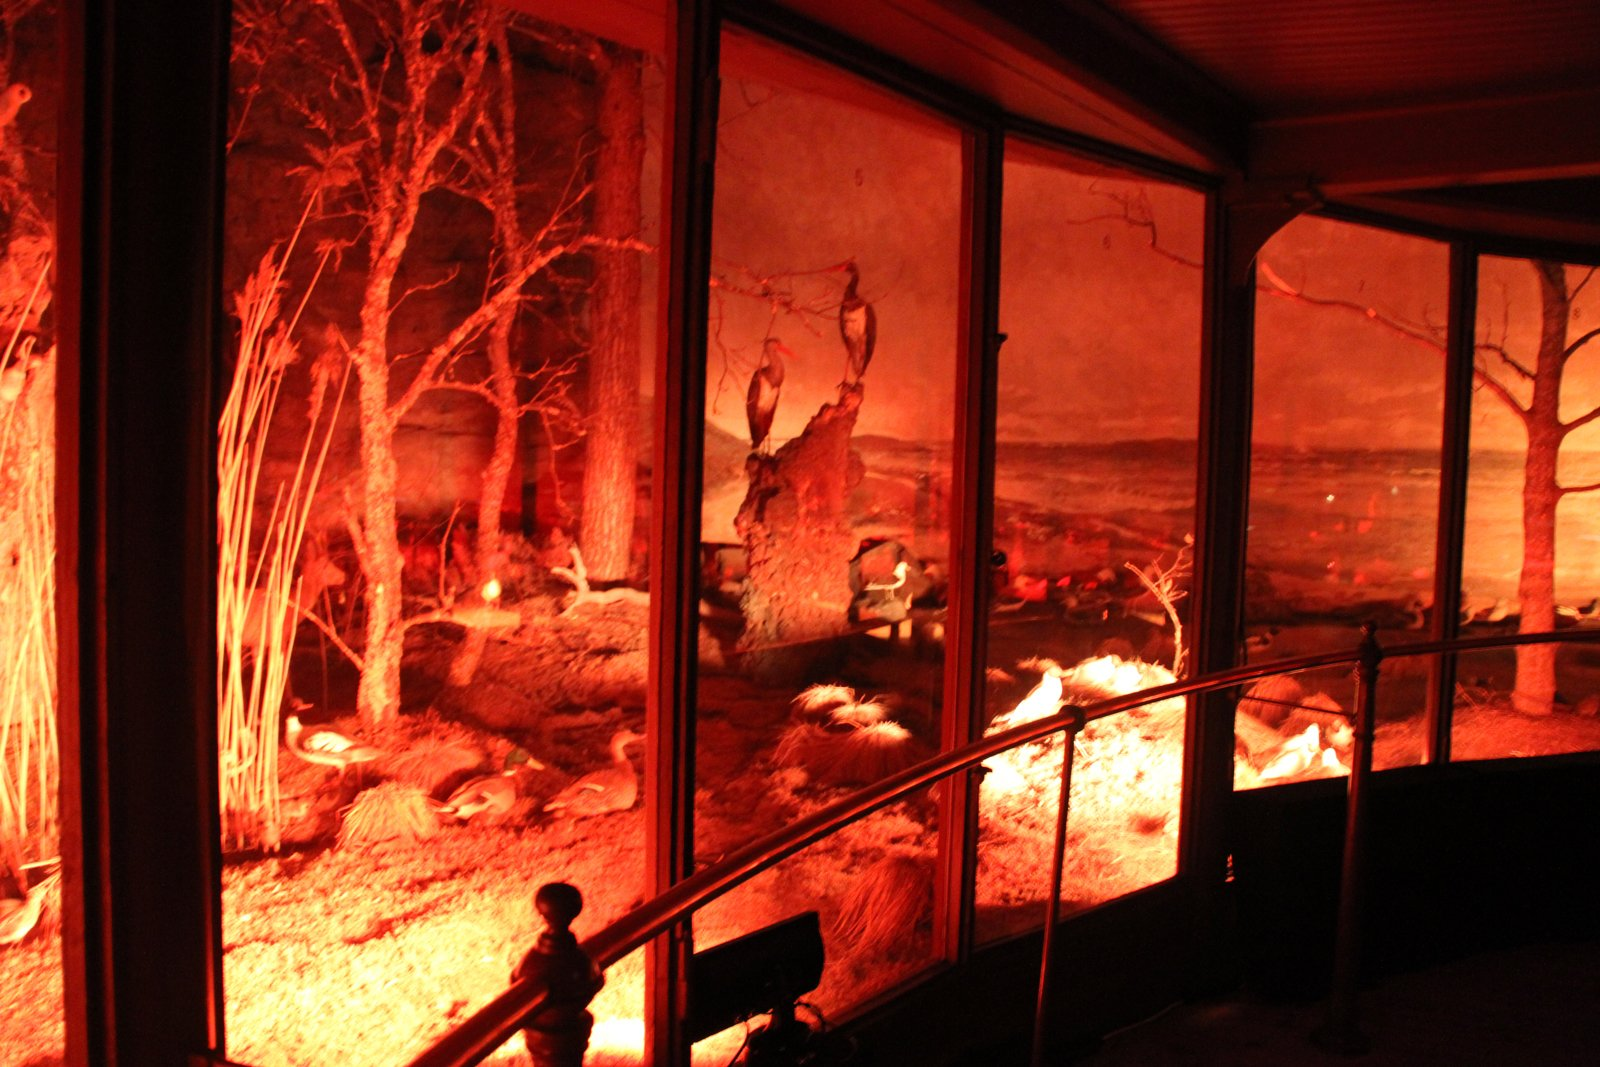 "One of the most talked-about events was the temporary, invitation-only exhibit 20 Designers at Biologiska, at the Biologika Museet (Biological Museum). Located inside a circa-1893 structure on Djurgården, the museum is basically a two-story cylindrical diorama that holds a collection of stuffed wildlife. Curated by Fredrik Färg, Emma Marga Blanche and Hanna Nova Beatrice, the exhibition is ""about evolution, diversity, and universality, where contemporary design, art and light is housed in an unexpected context.""  Search ""영동키스의민족스케줄춘천출장만남(TALK:za32)24시간 상담가능 합니다"" from Stockholm Design Week 2011"